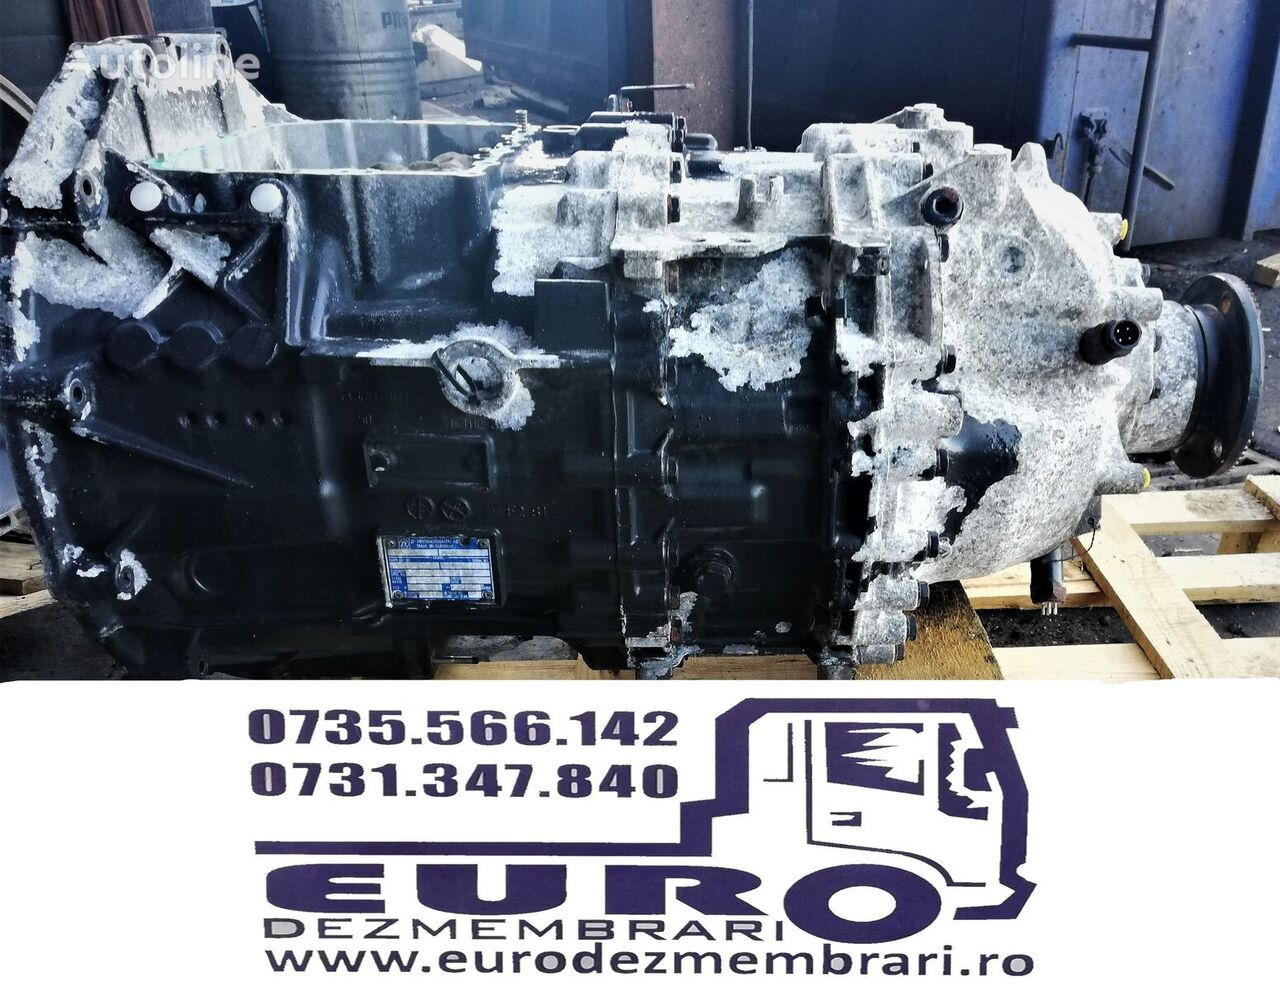 ZF 12 AS 2301 gearbox for MAN tractor unit